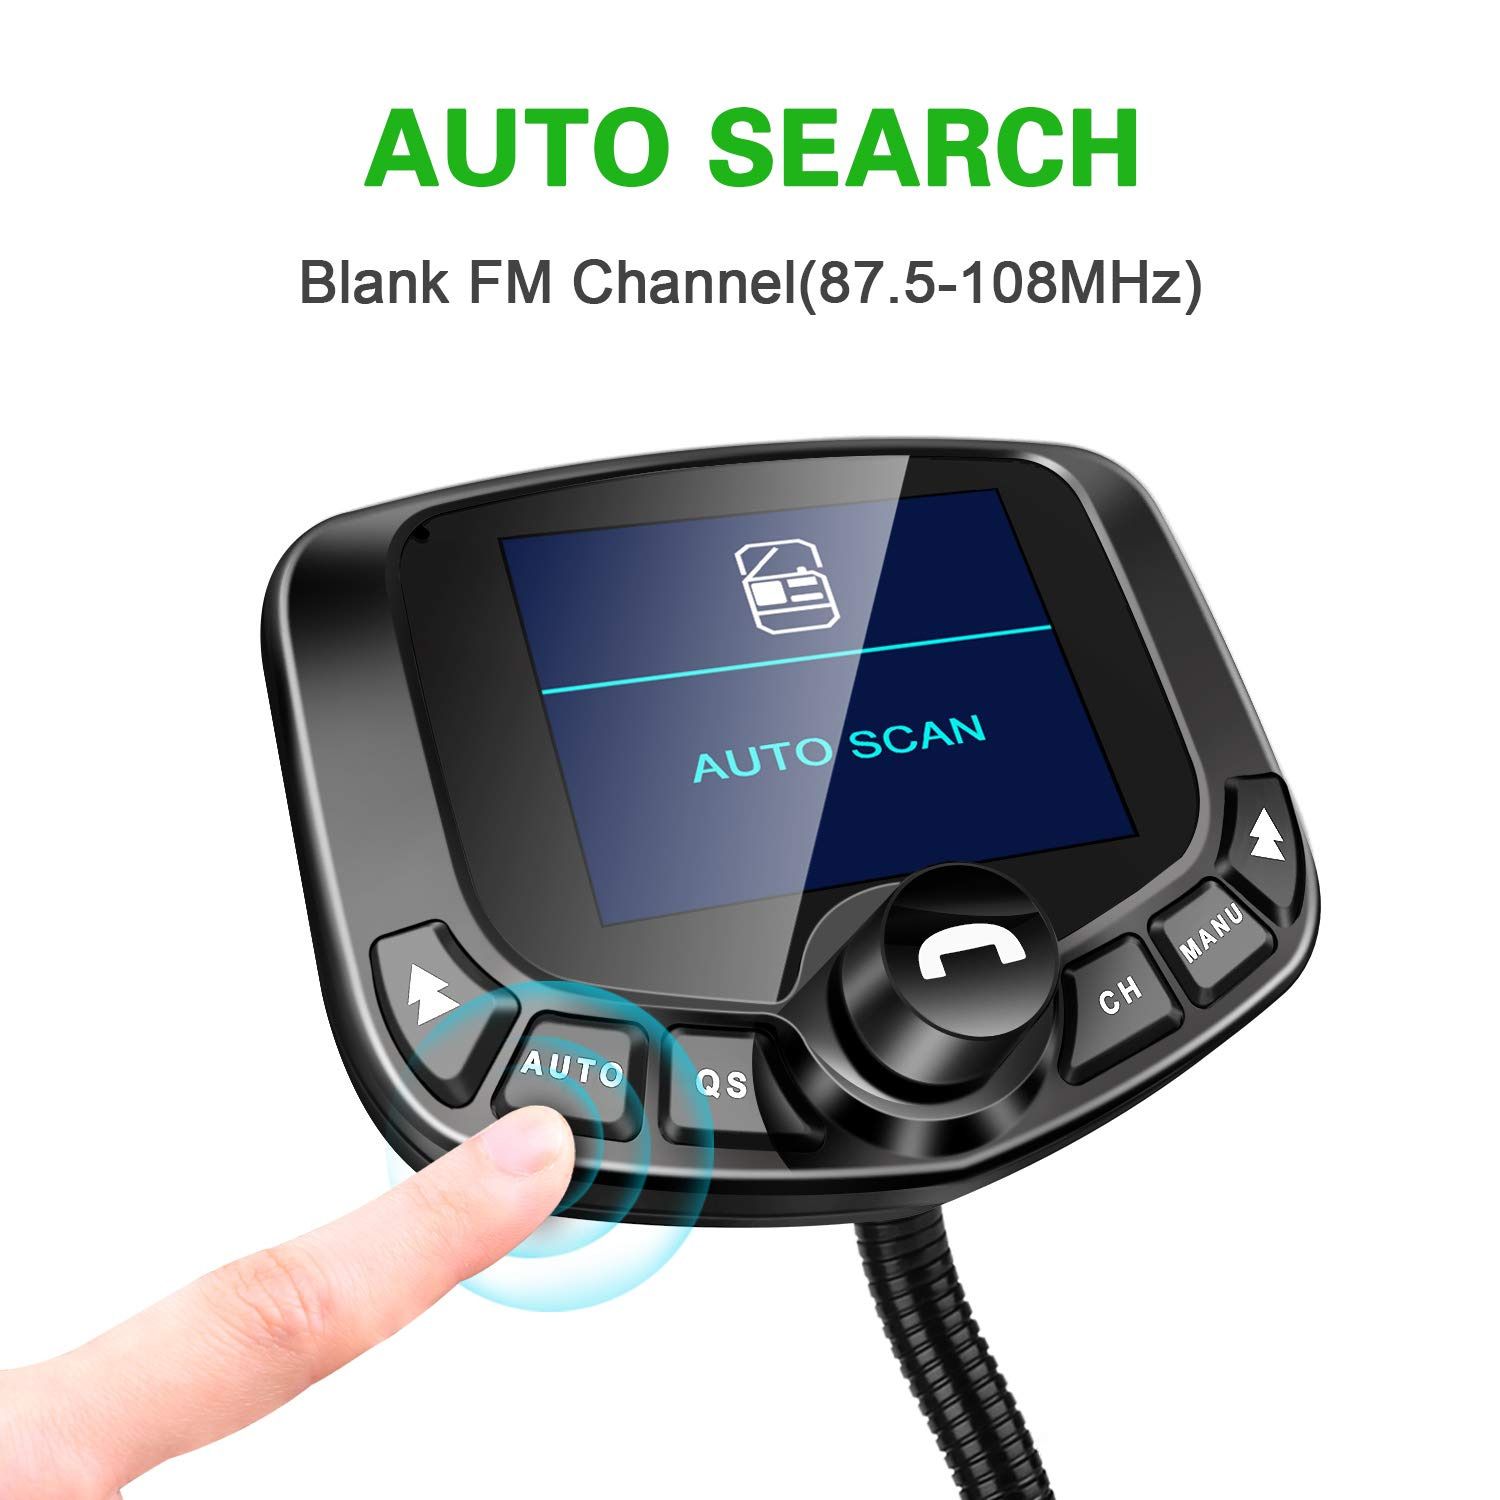 Wireless Radio Adapter Hands-Free Kit 1.8/'/'Color Display with Auto Search FM Blank Channel /& QC3.0 Fast Charging Function TF Card AUX Input//Output Support USB LoHi Bluetooth FM Transmitter for Car